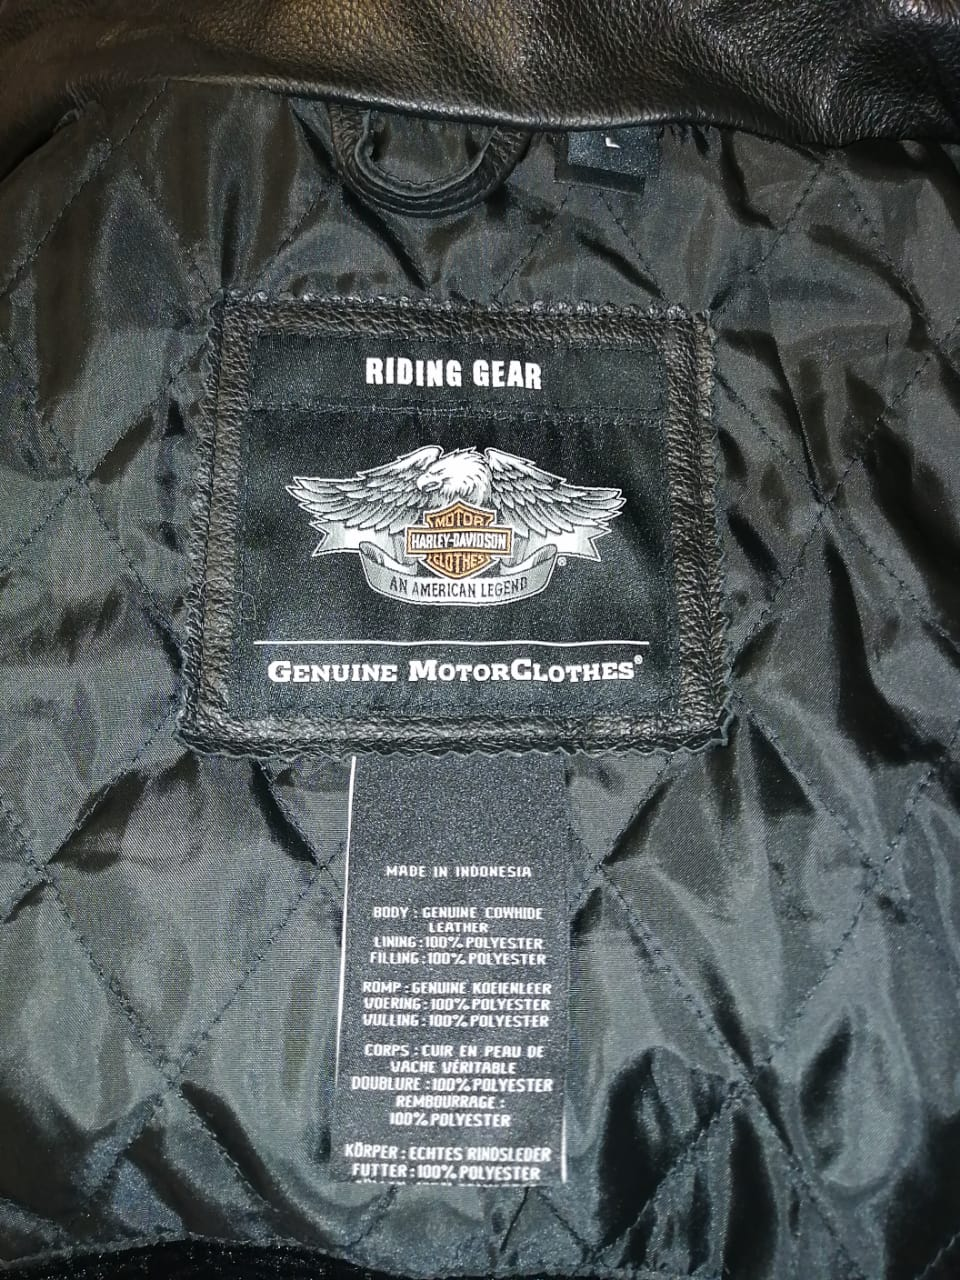 Motorcycle accessories for sale